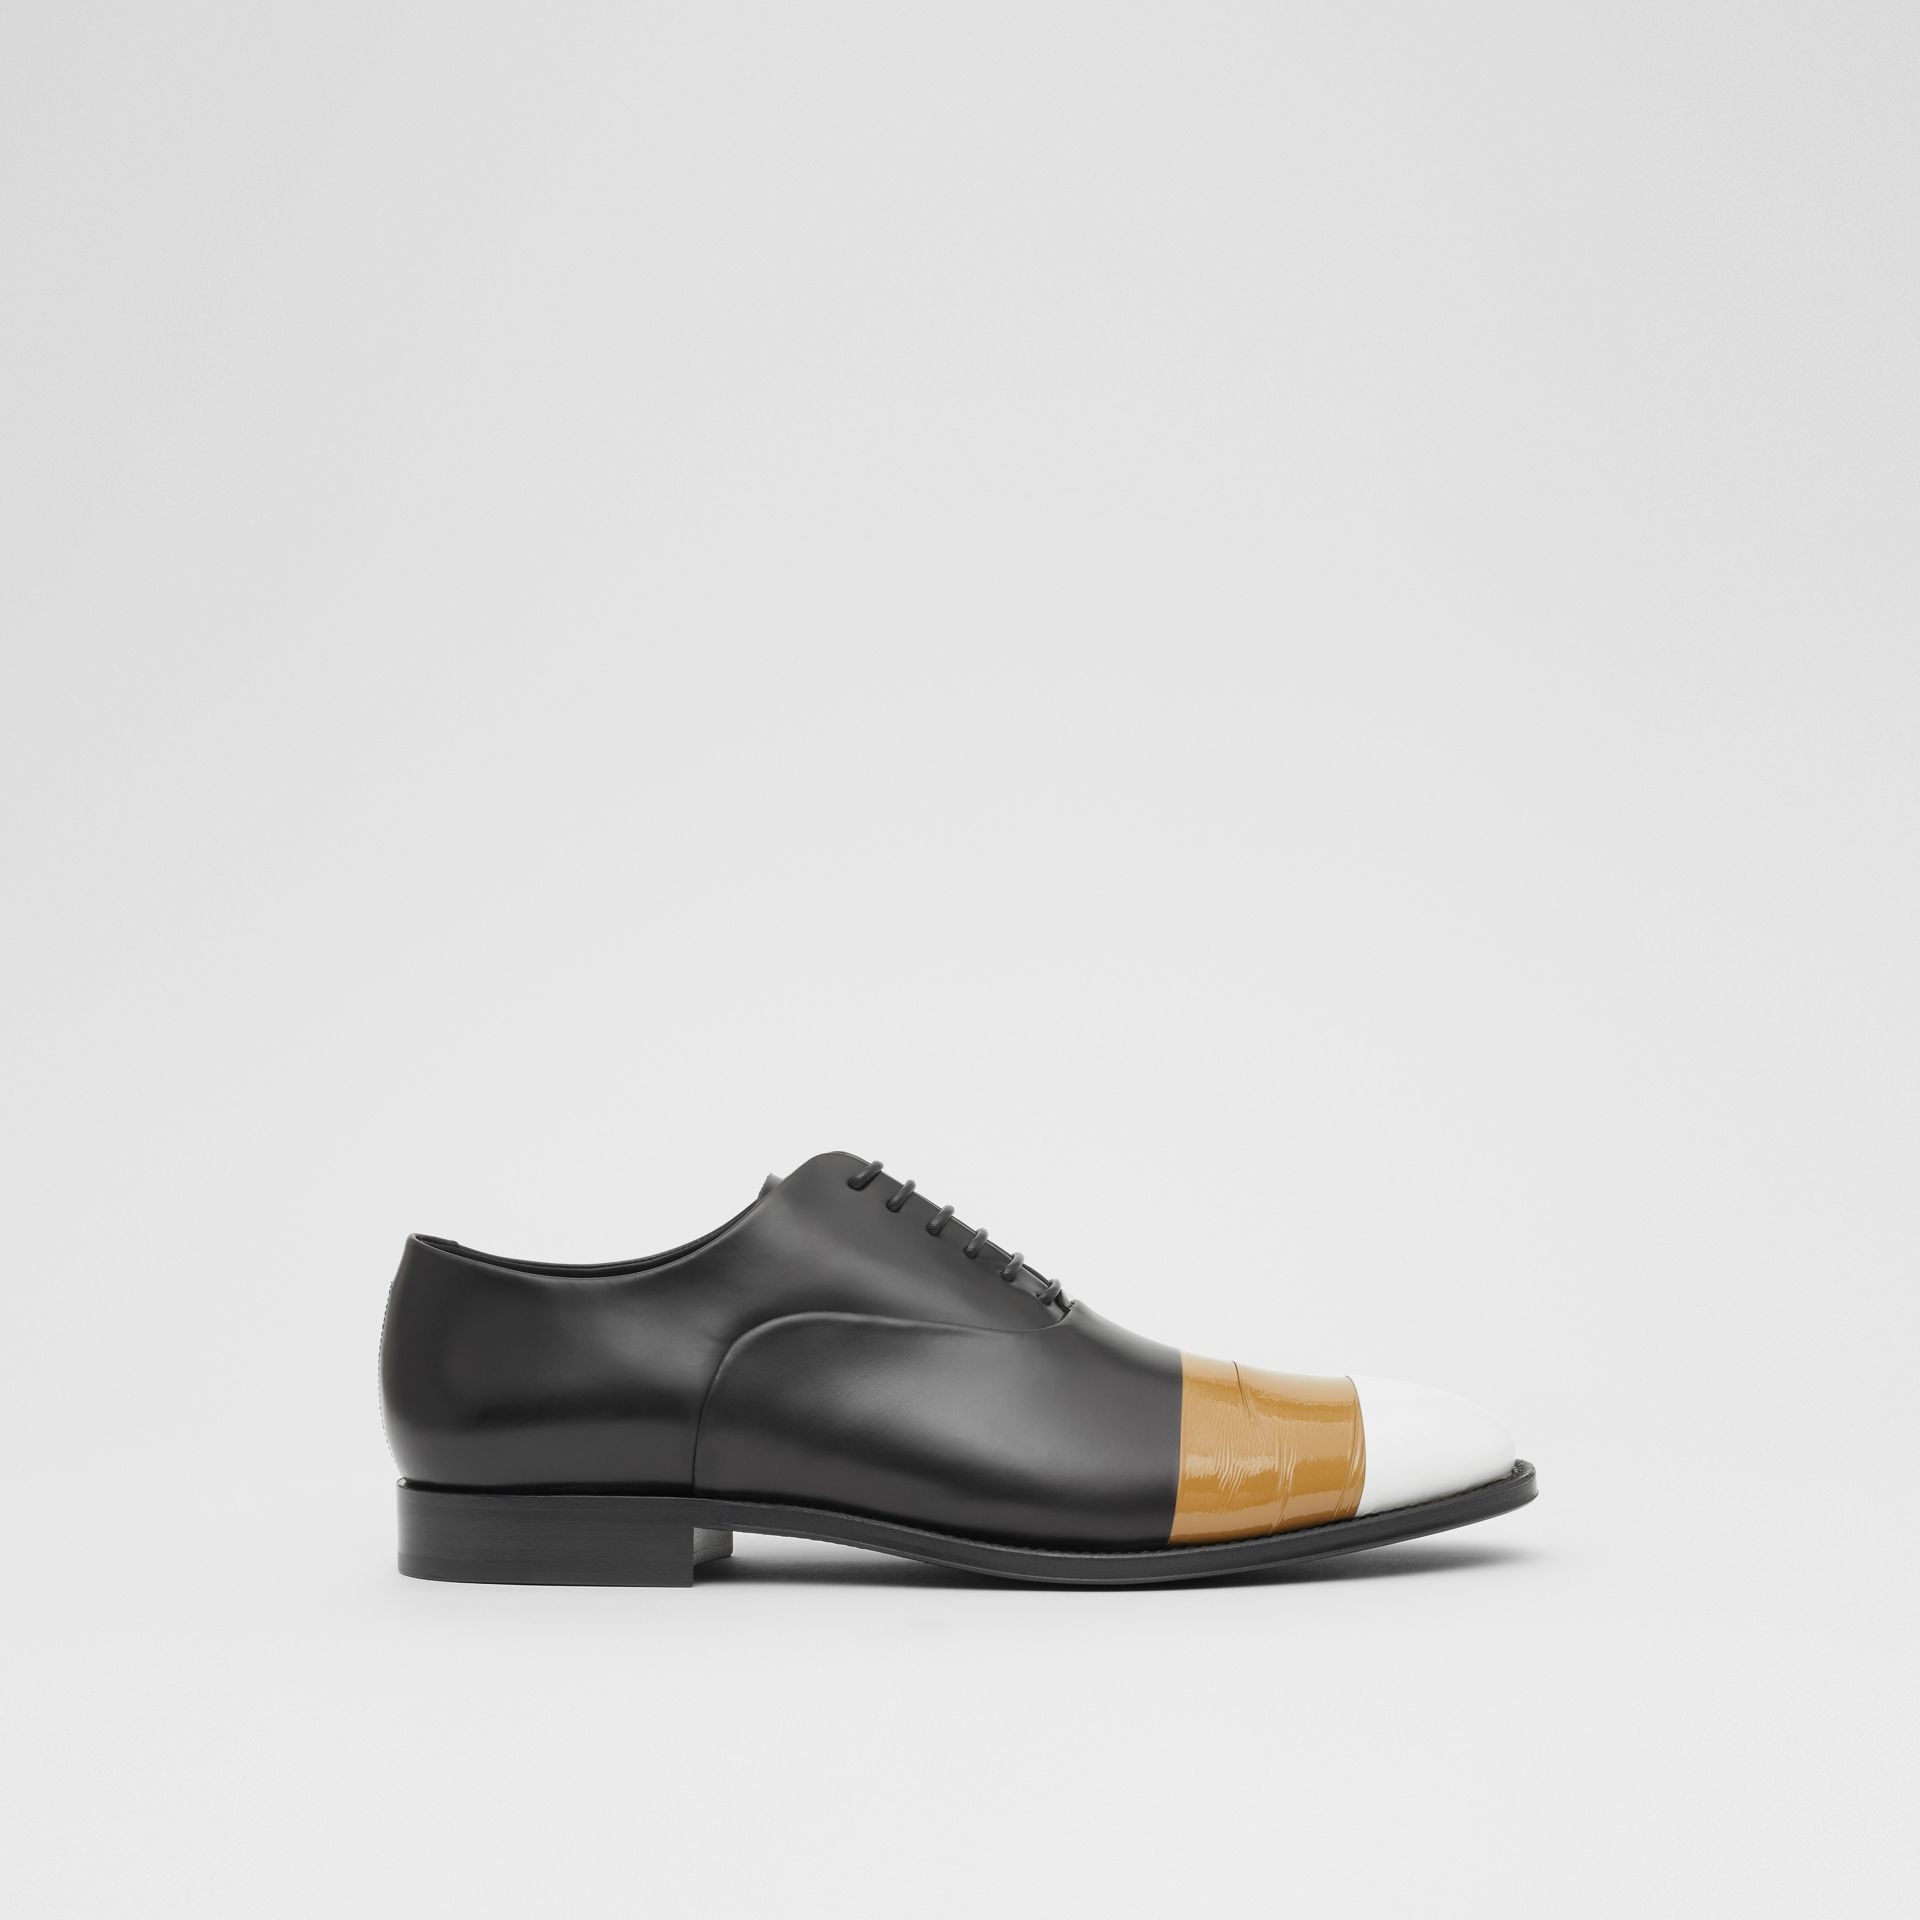 Tape Detail Leather Oxford Shoes in Black/optic White - Men | Burberry - gallery image 4